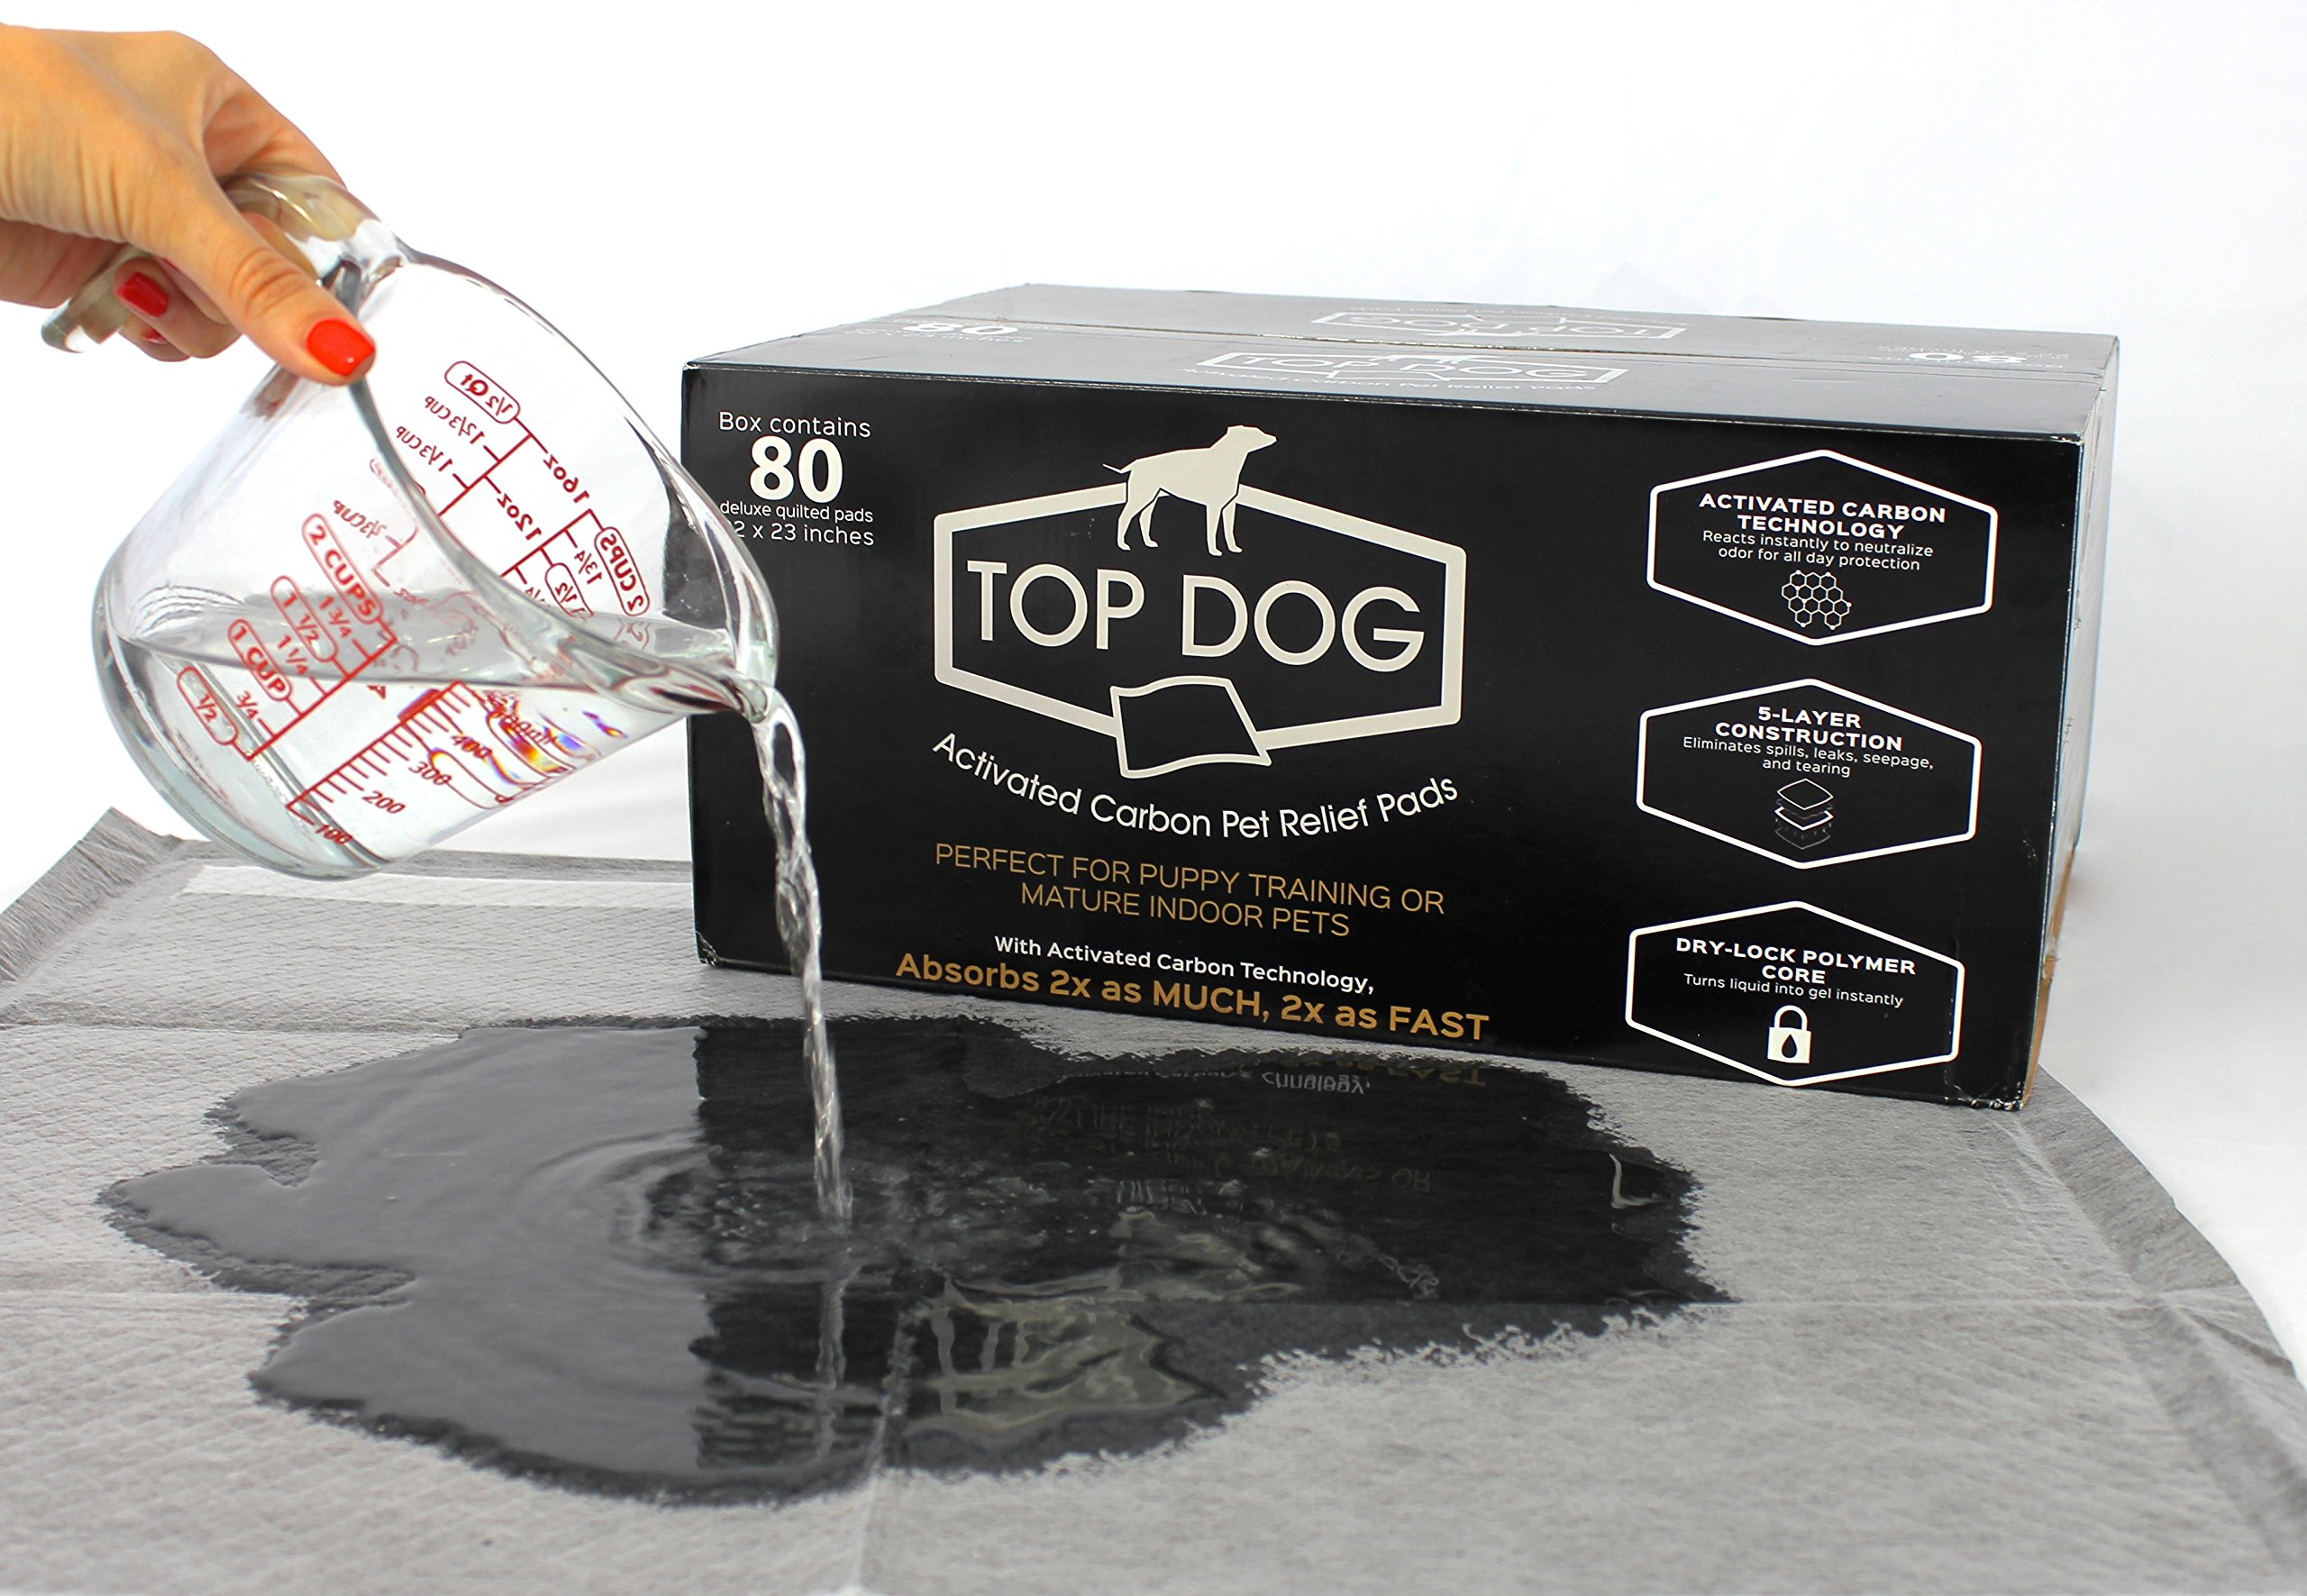 dog supplies online top dog, black premium puppy pad (80 pack) dog training pads with quick-dry odor control carbon, perfect for puppy training and mature pets, 22 x 23, 80 count